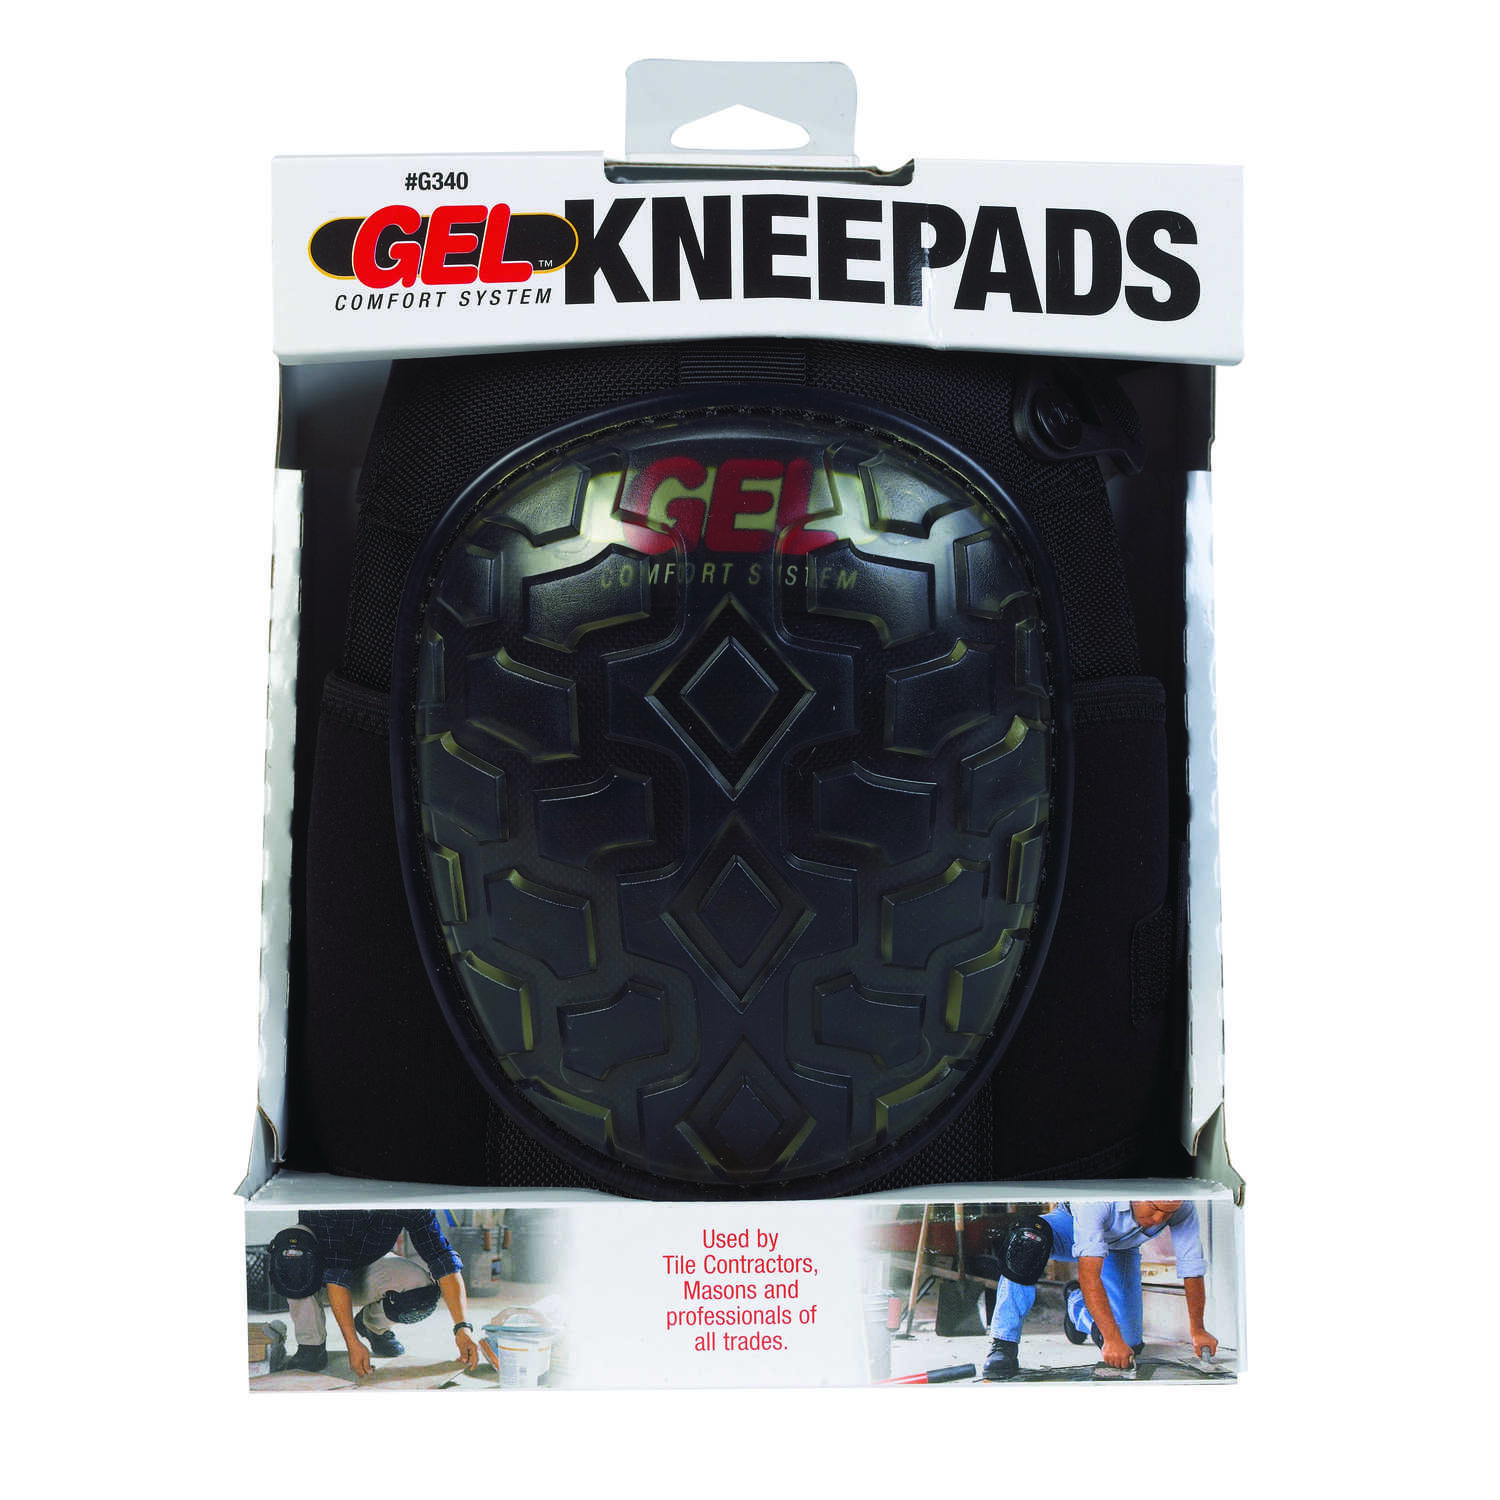 CLC Work Gear  10-7/16 in. L x 8 in. W Gel  Knee Pads  Black